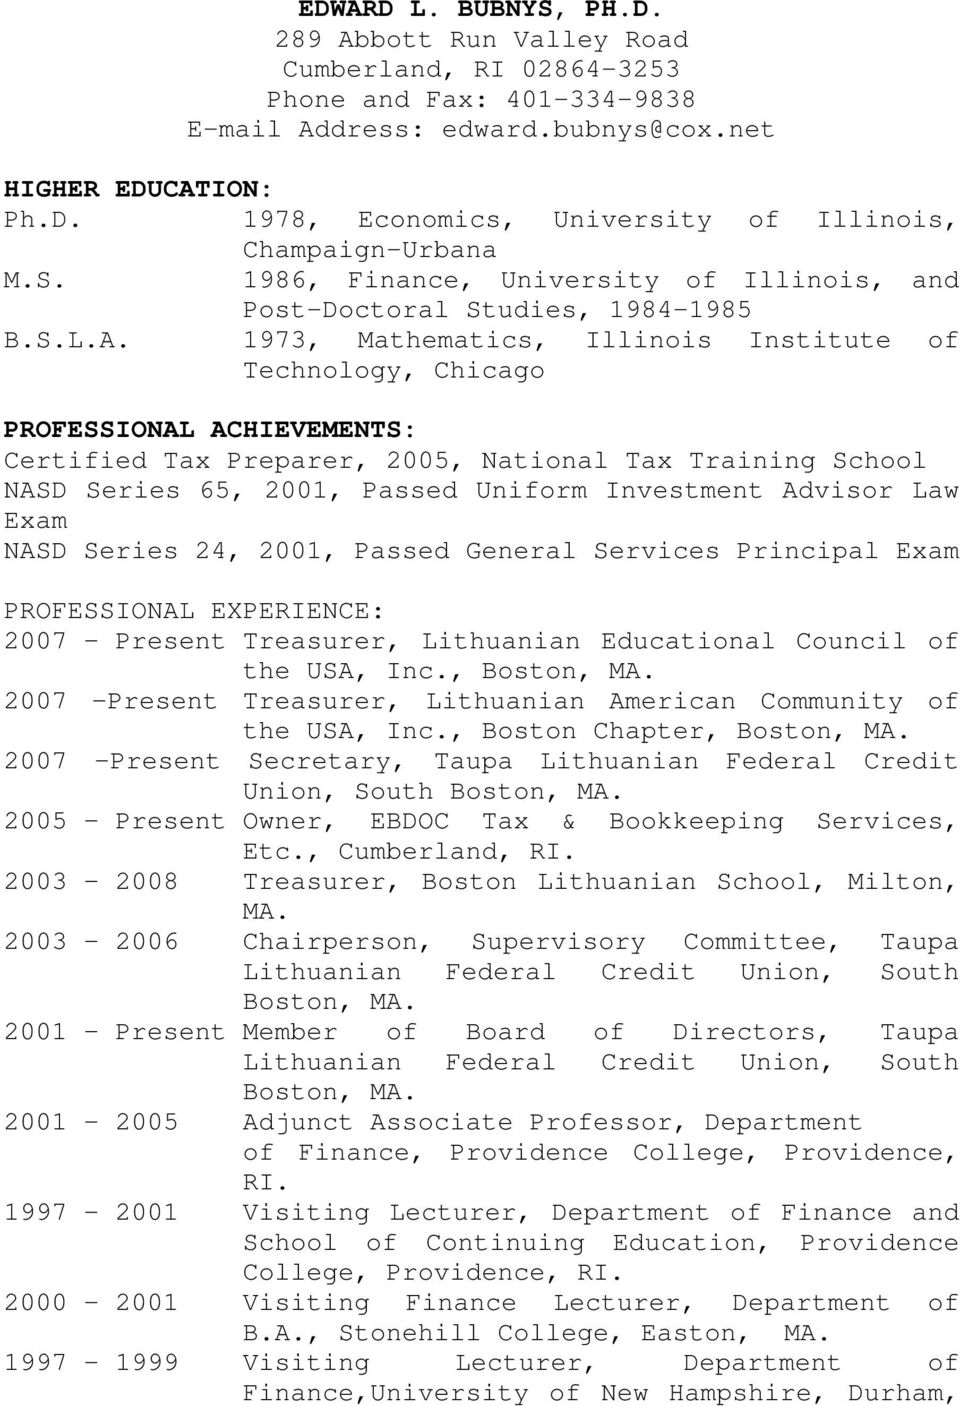 1973, Mathematics, Illinois Institute of Technology, Chicago PROFESSIONAL ACHIEVEMENTS: Certified Tax Preparer, 2005, National Tax Training School NASD Series 65, 2001, Passed Uniform Investment